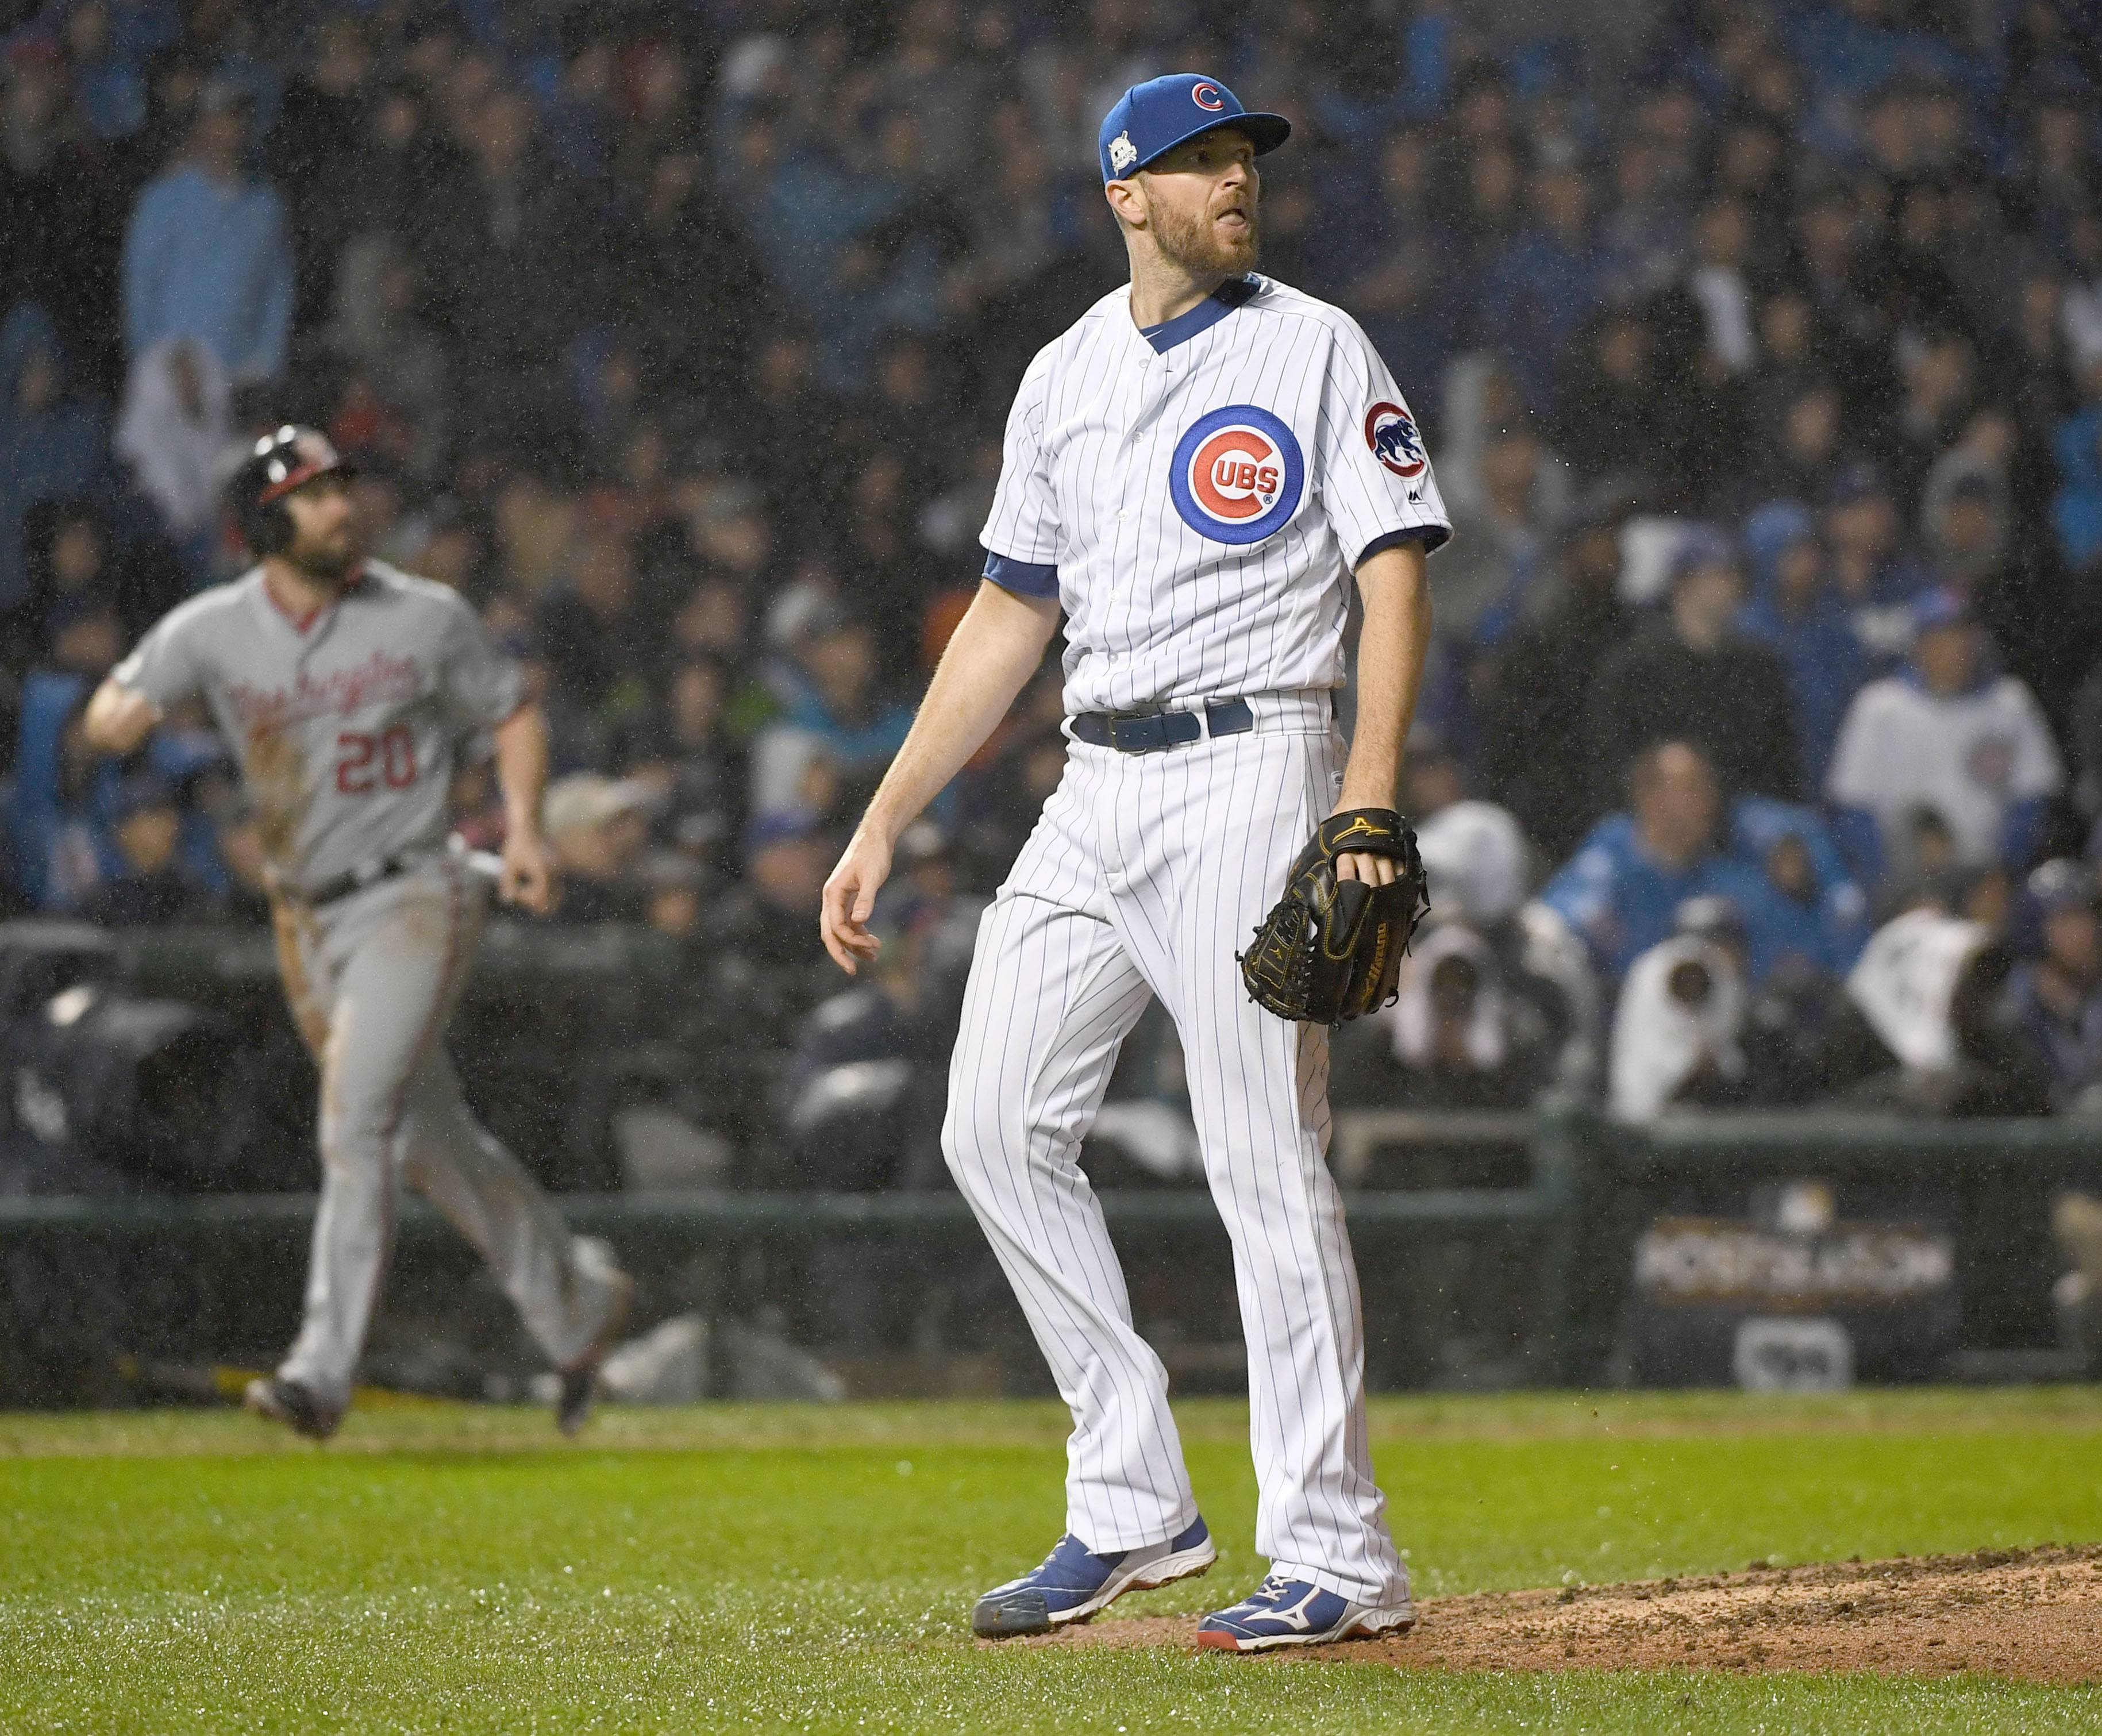 Chicago Cubs relief pitcher Wade Davis (71) watches the flight of a grand slam off the bat of Washington Nationals center fielder Michael Taylor (3) during Game 4 of the NLDS at Wrigley Field in Chicago, Ill. on Wednesday, Oct. 11, 2017.